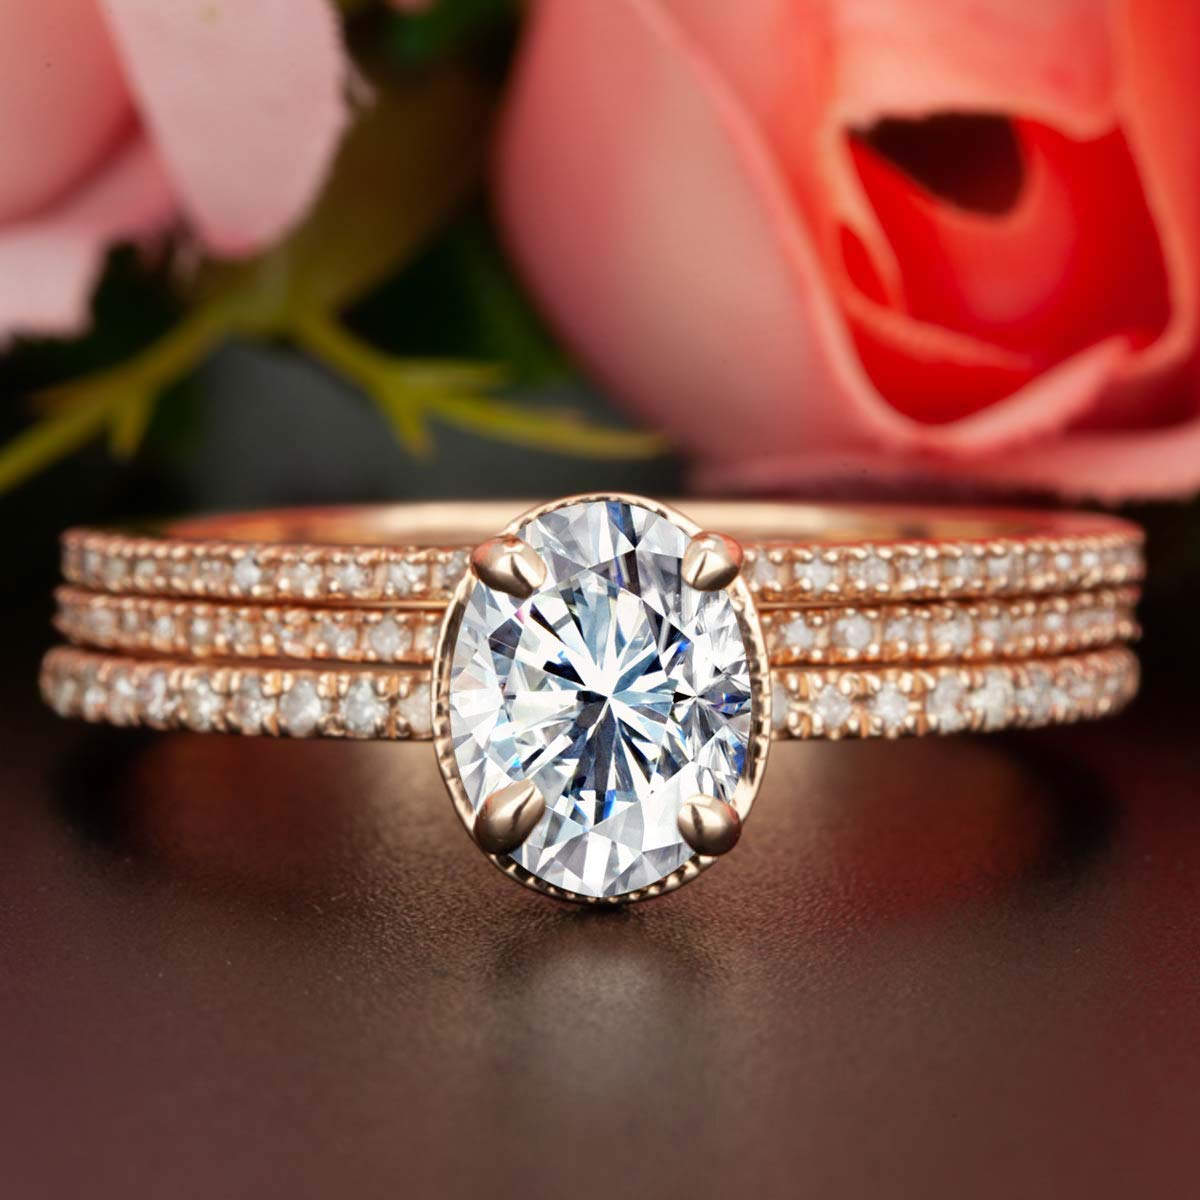 a73a9b9c5fec0 Amazon.com: 2 Carat Oval Cut Moissanite and Diamond Trio Wedding ...